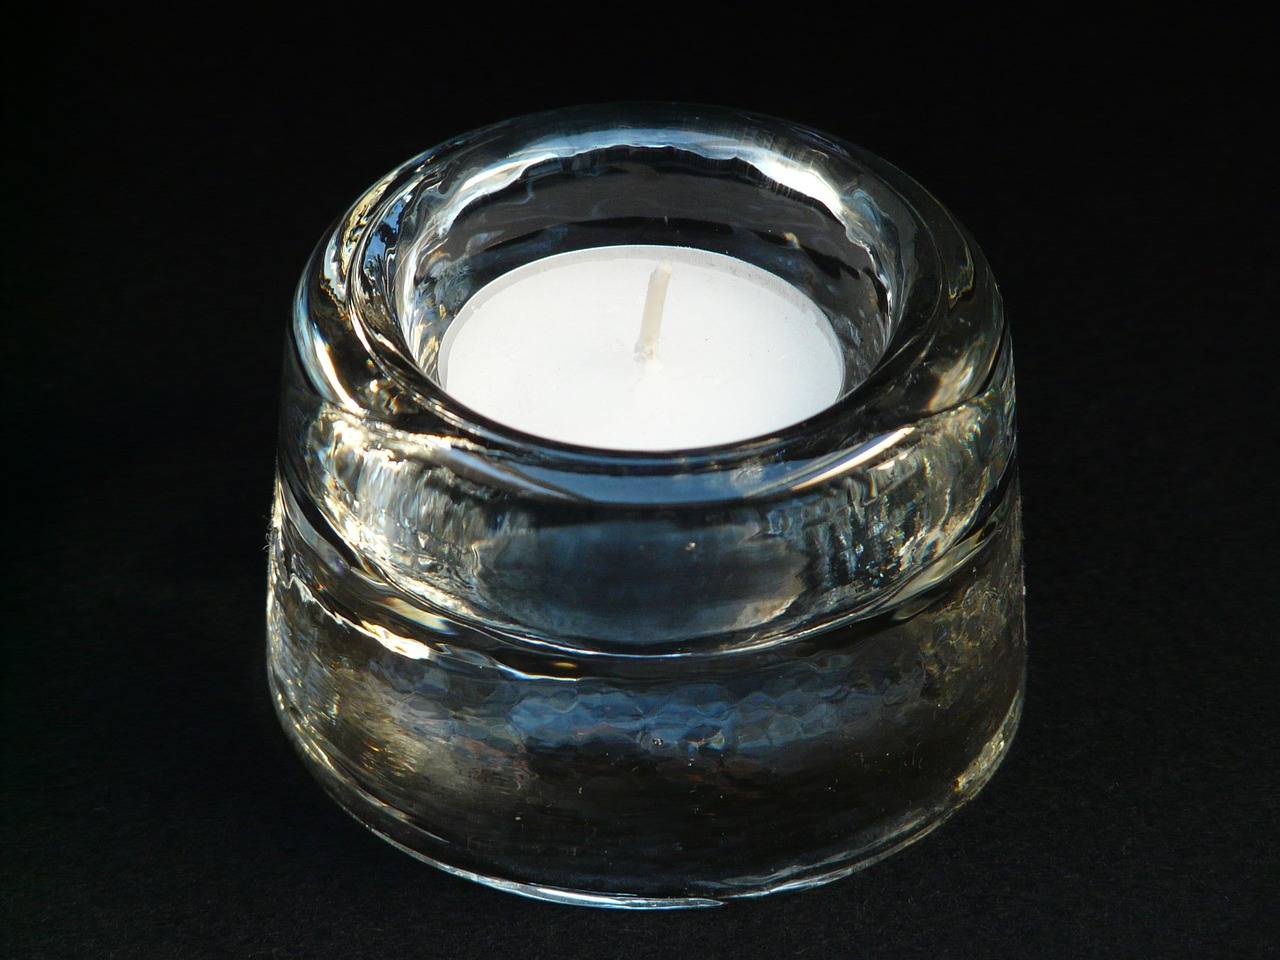 tealight candle burn free photo